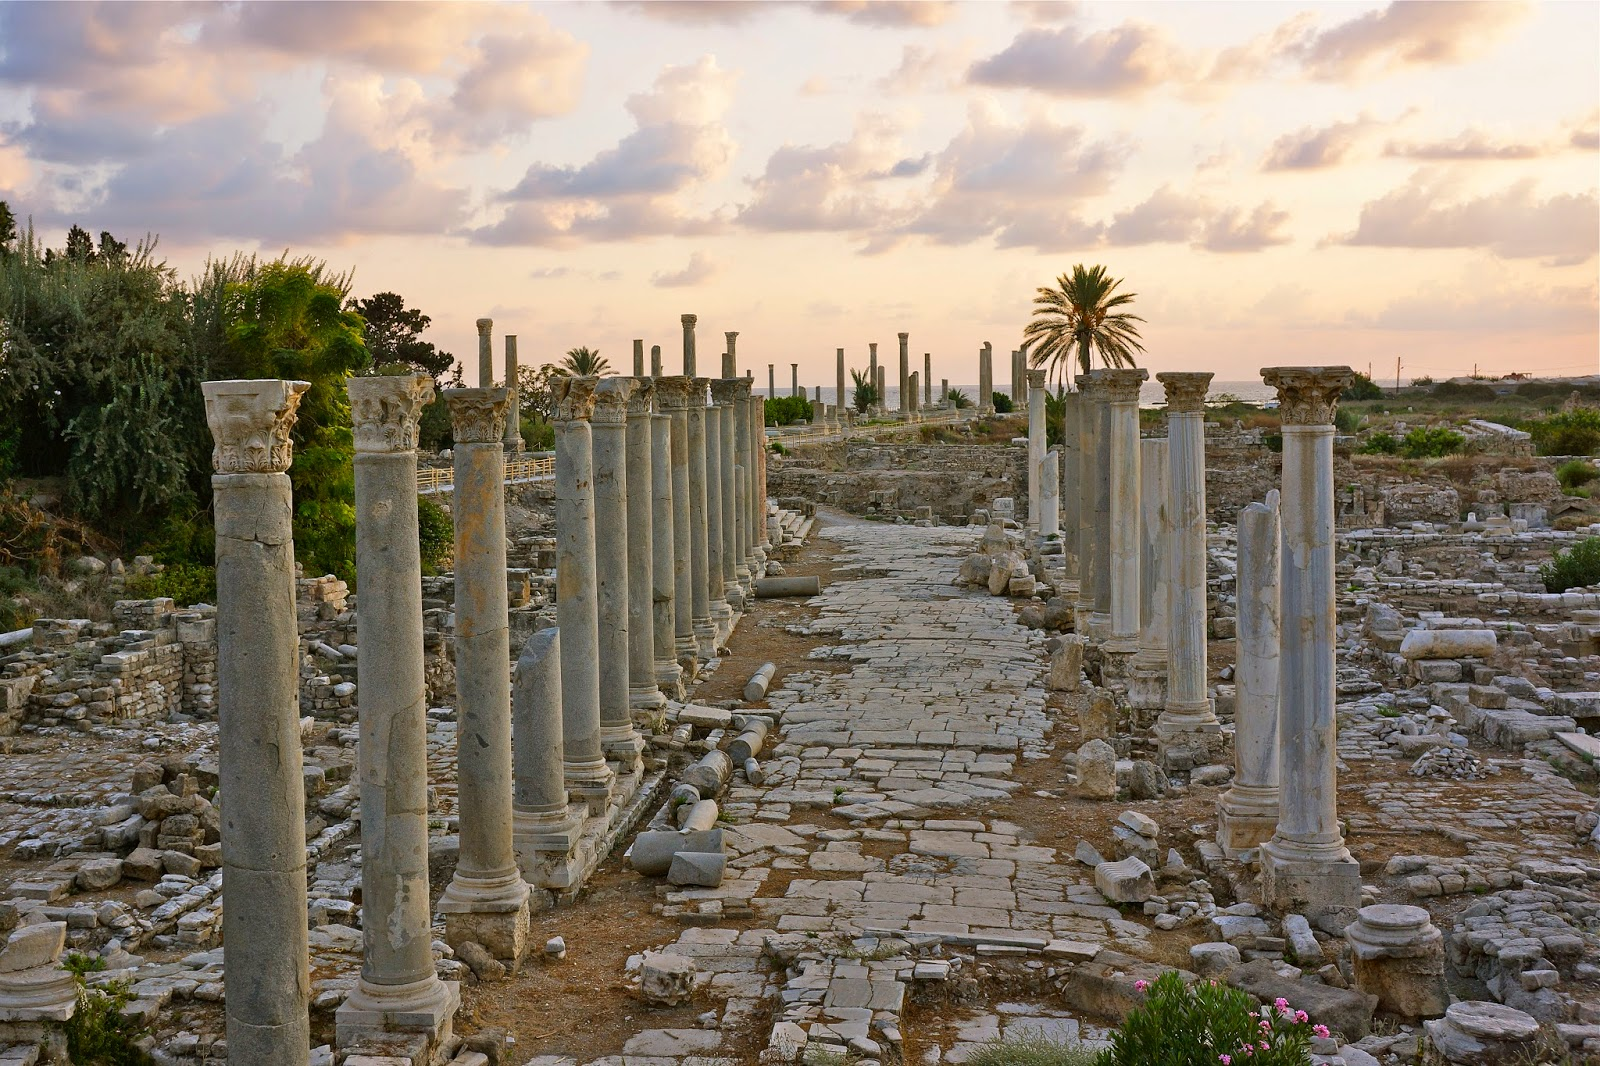 Picture of the ancient Roman road in Tyre, Lebanon.